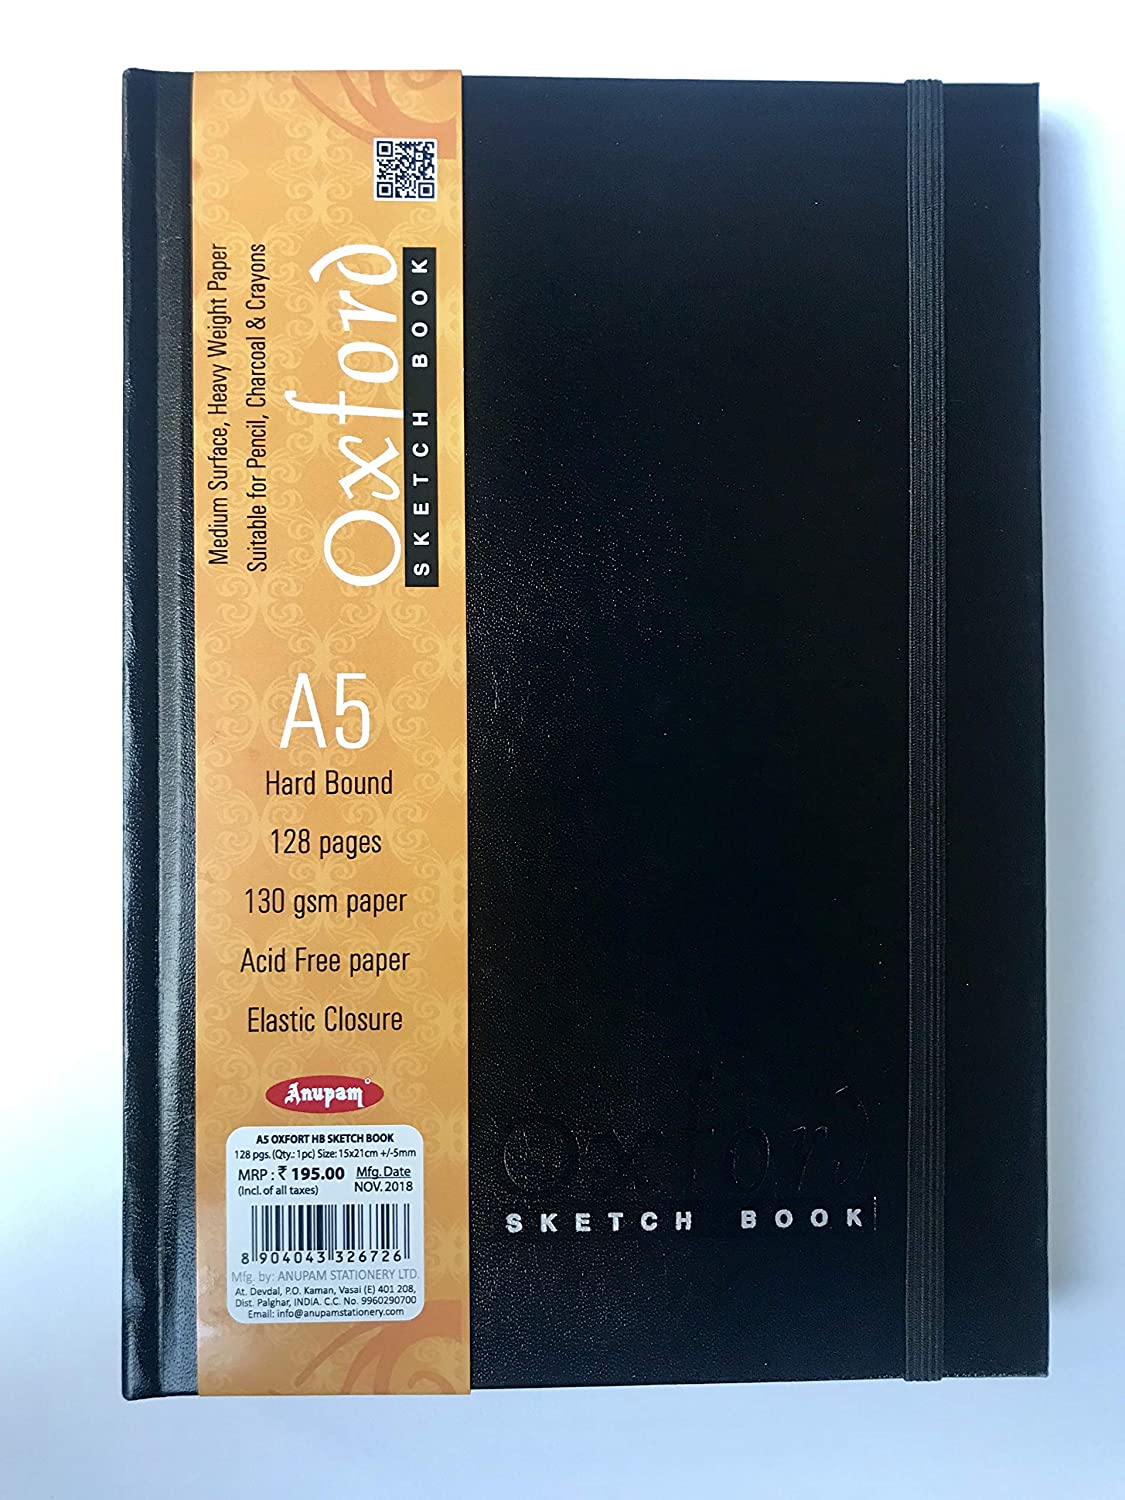 Anupam Oxford Sketch Book (Hb)- 128 Pages, A5